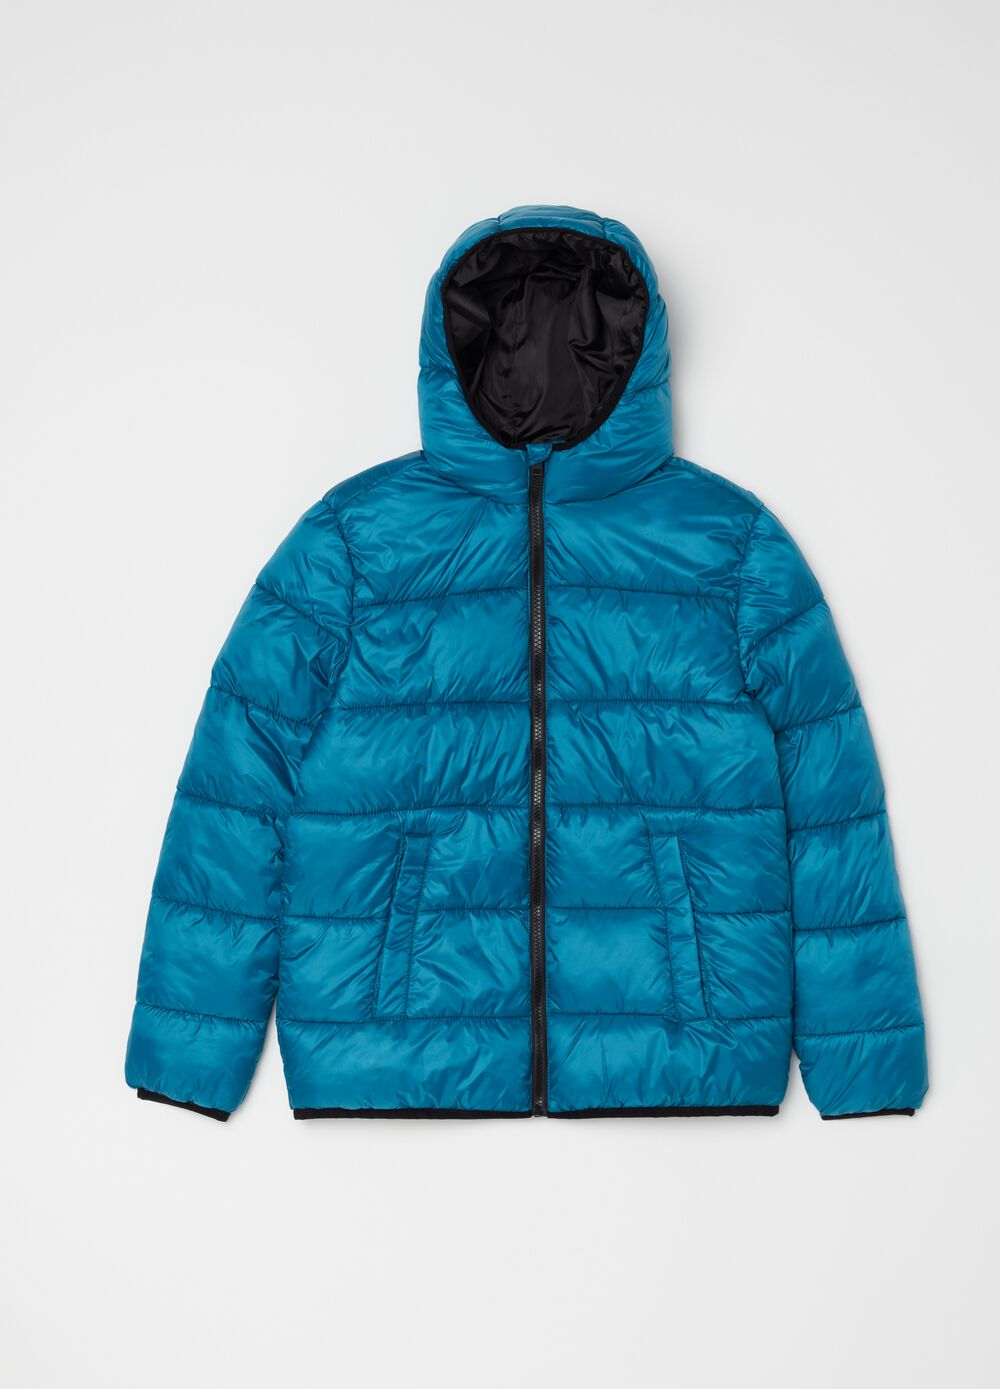 Nylon down jacket with hood and zip